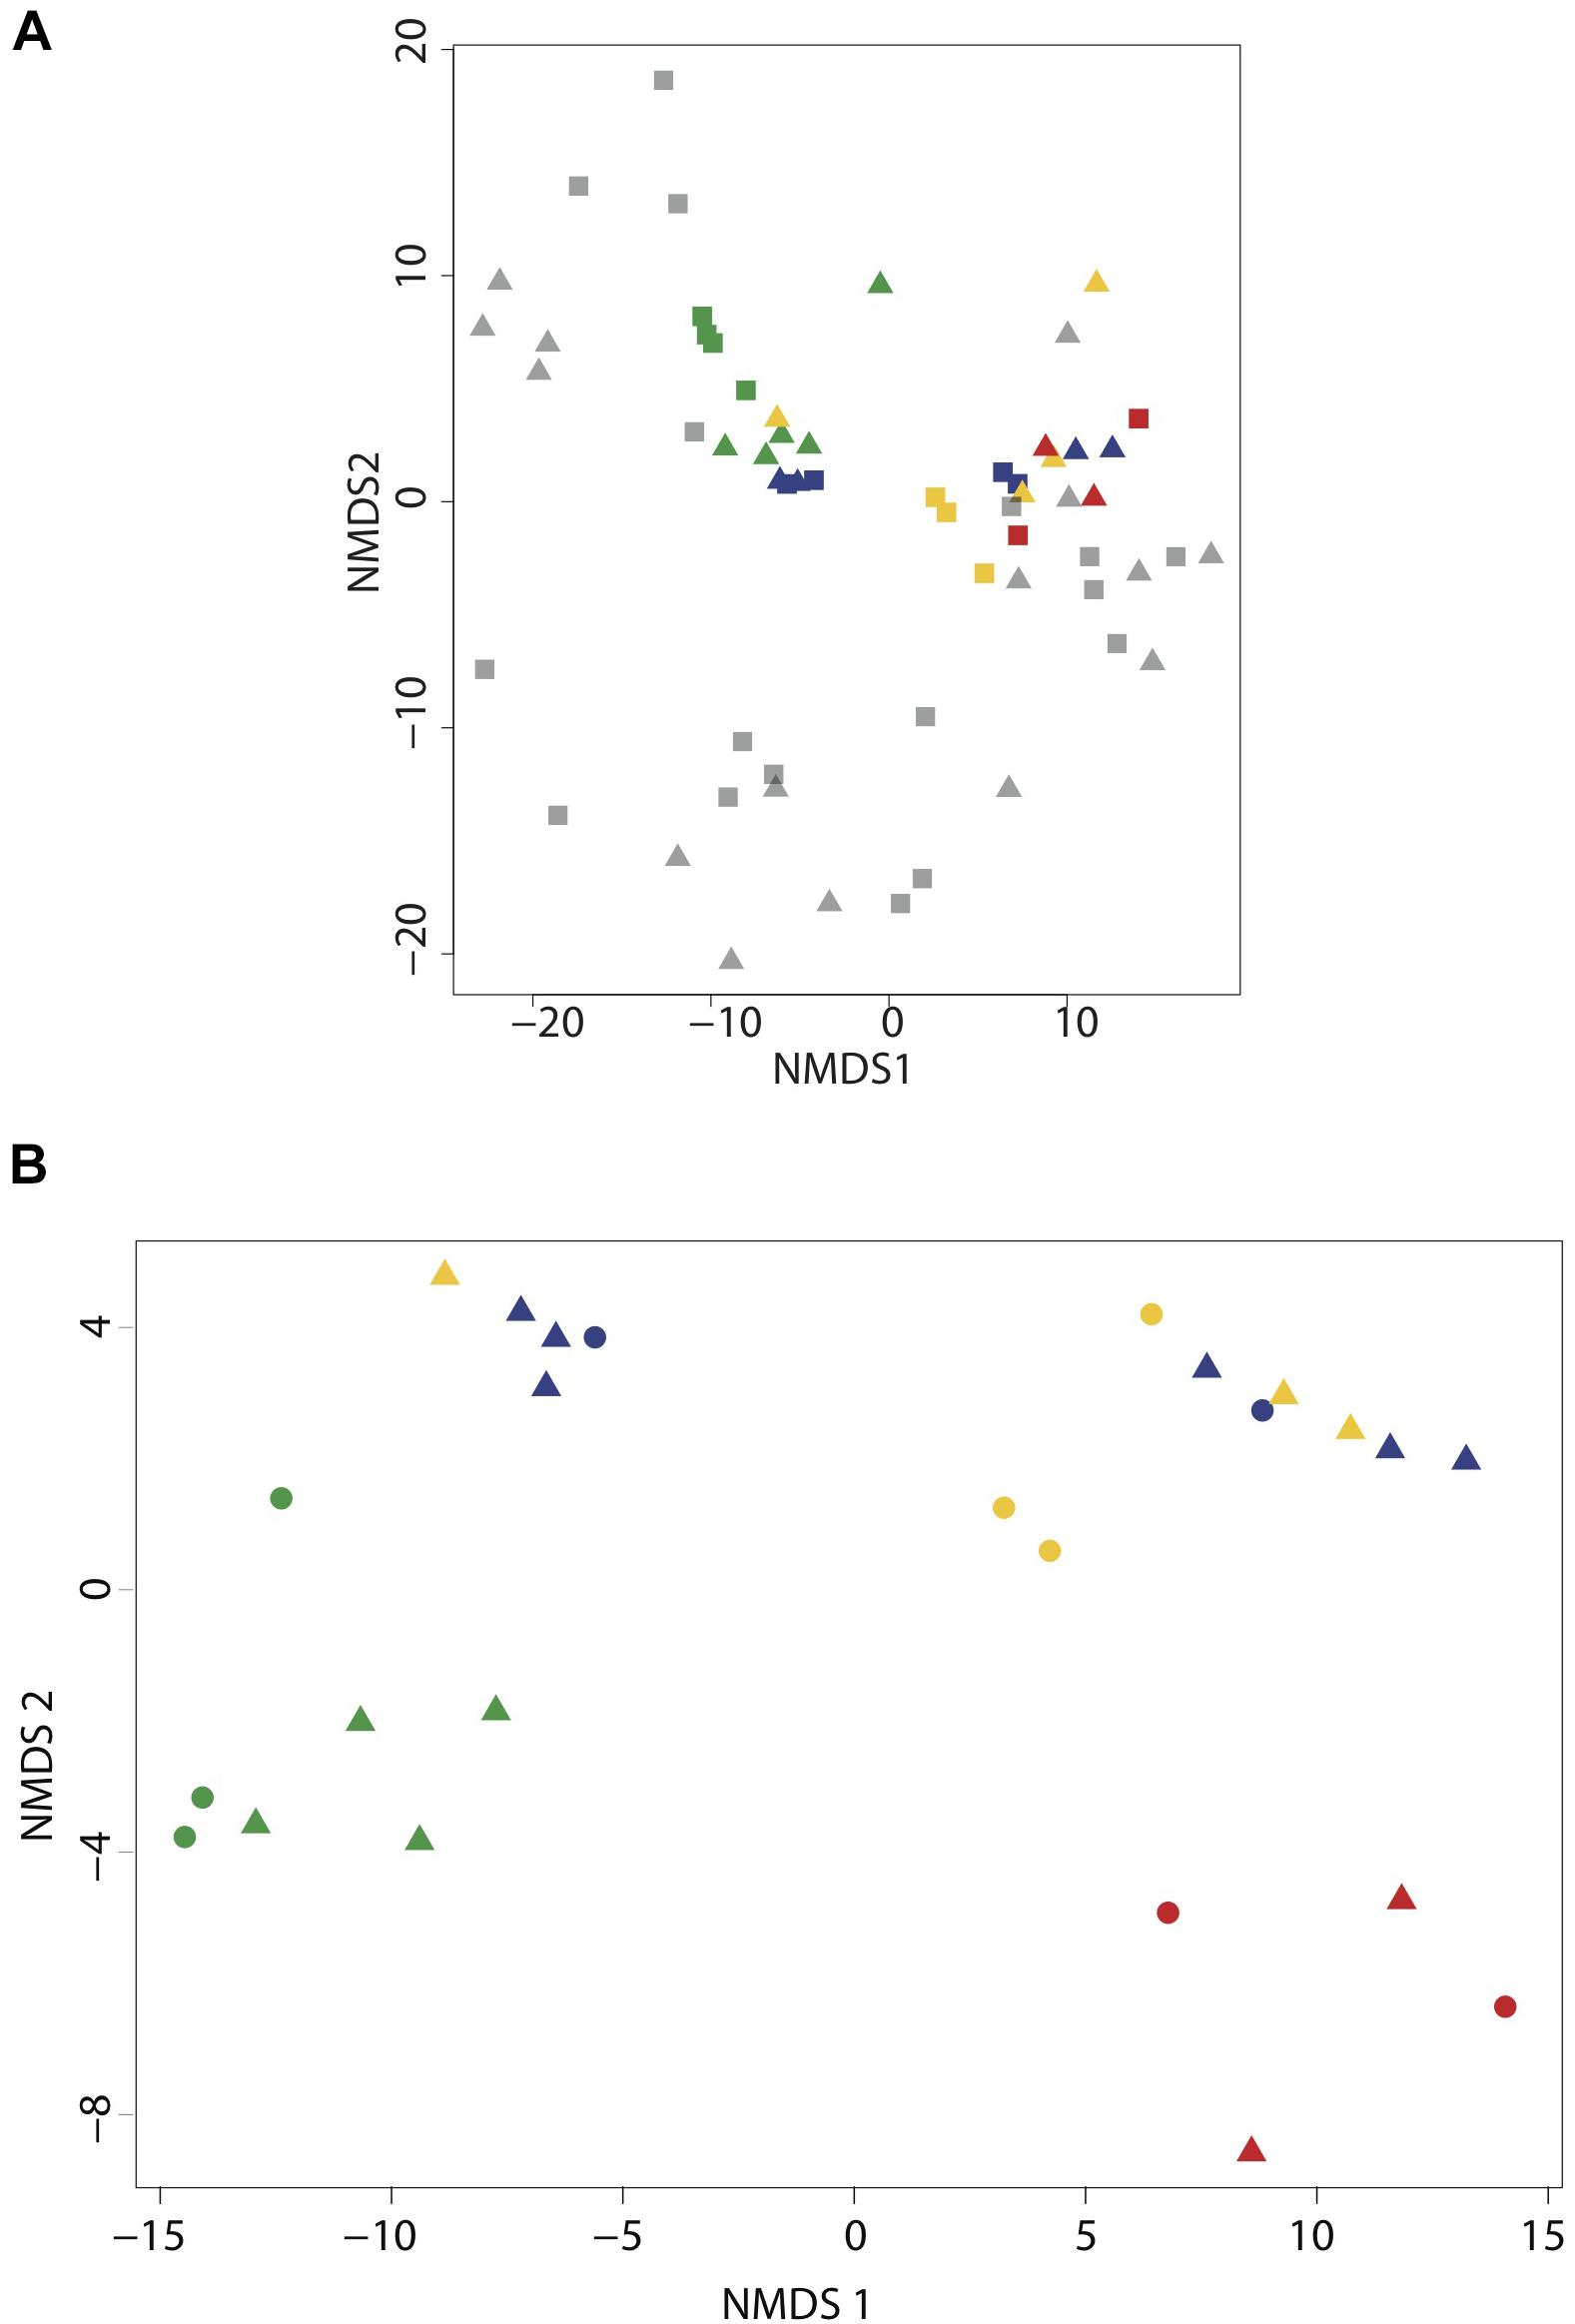 Frontiers | Sampling and Processing Methods Impact Microbial